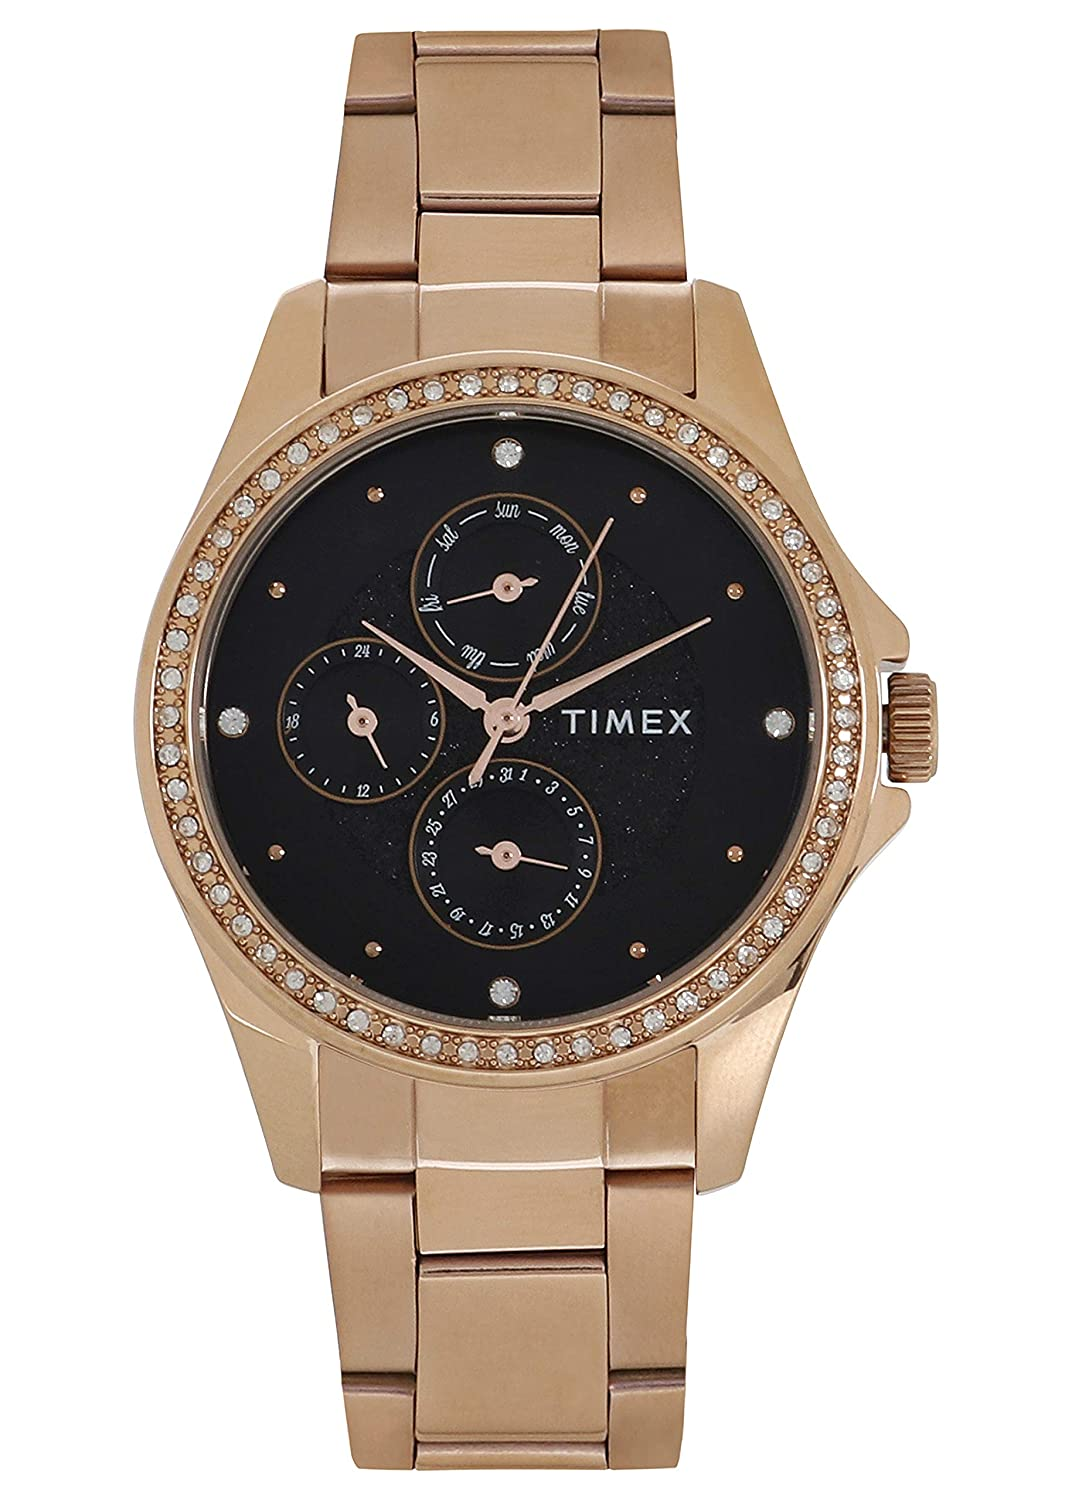 Timex Expensive Watches Brands in India in 2020